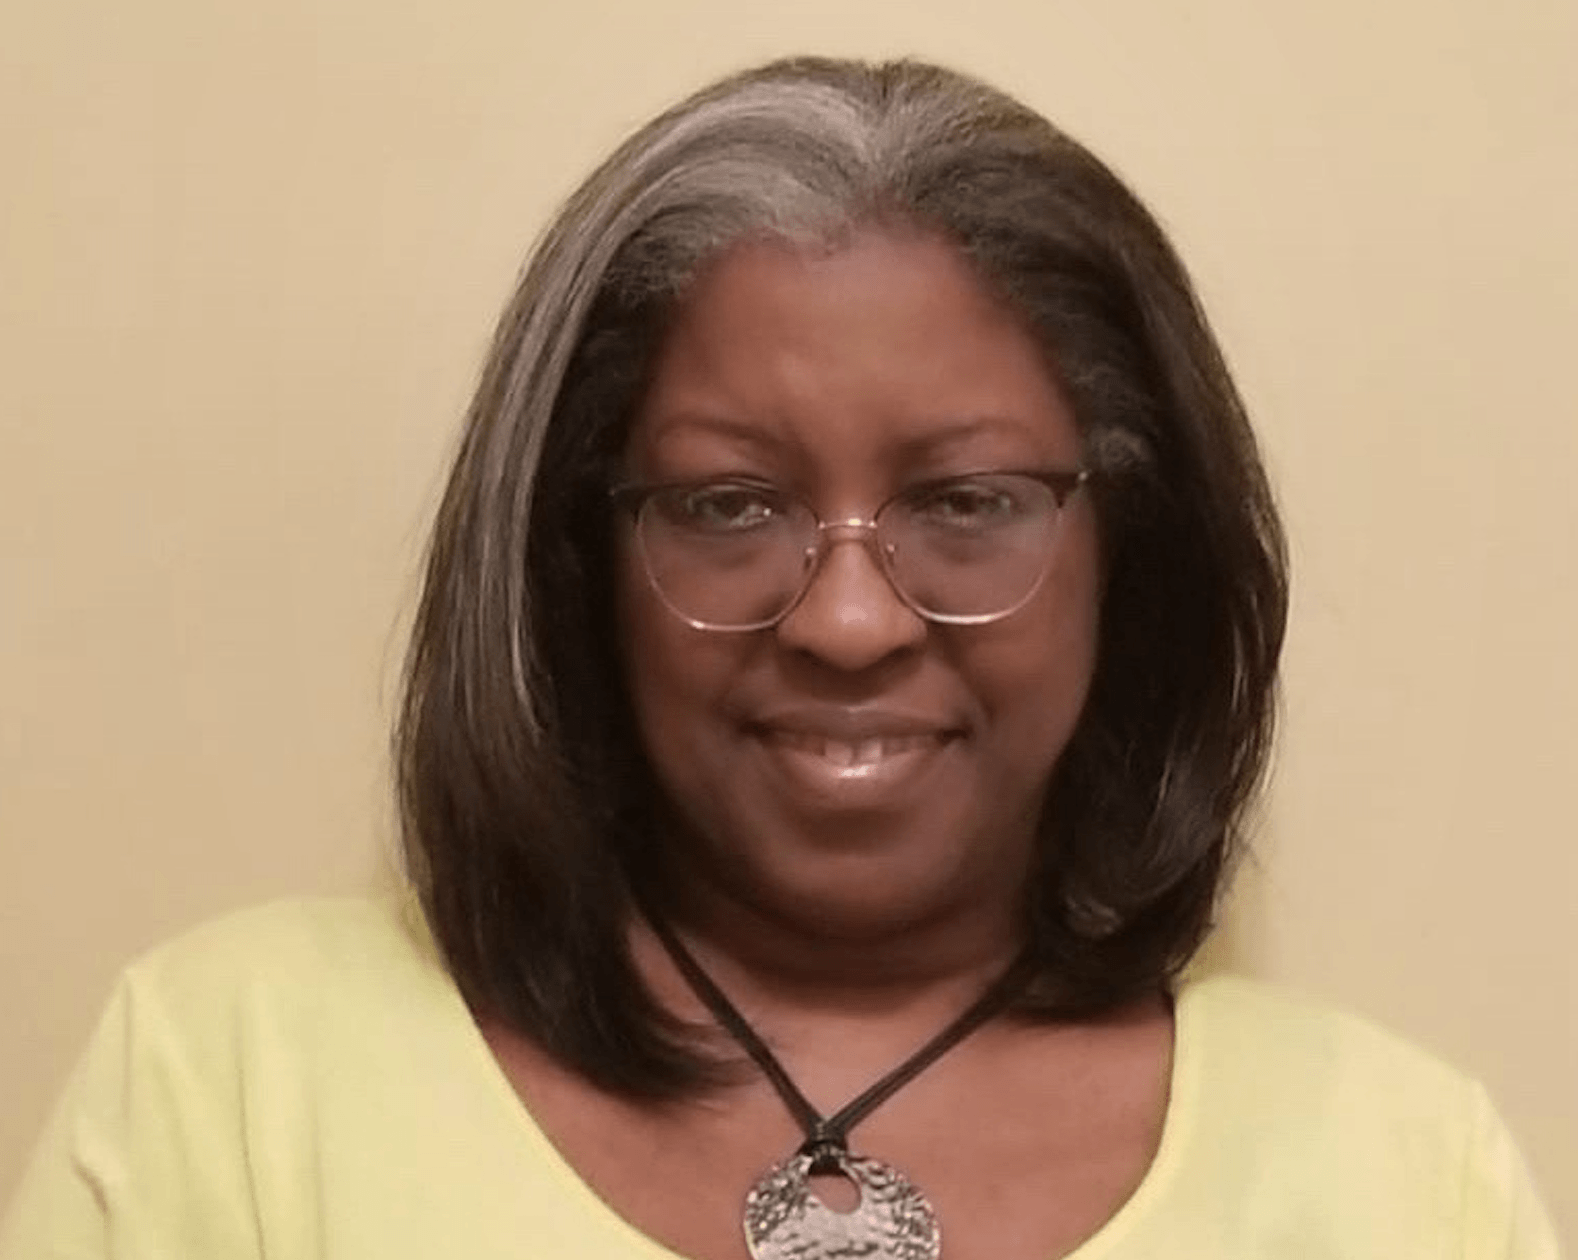 Confronting anti-Black racism with Kimberly McCormick